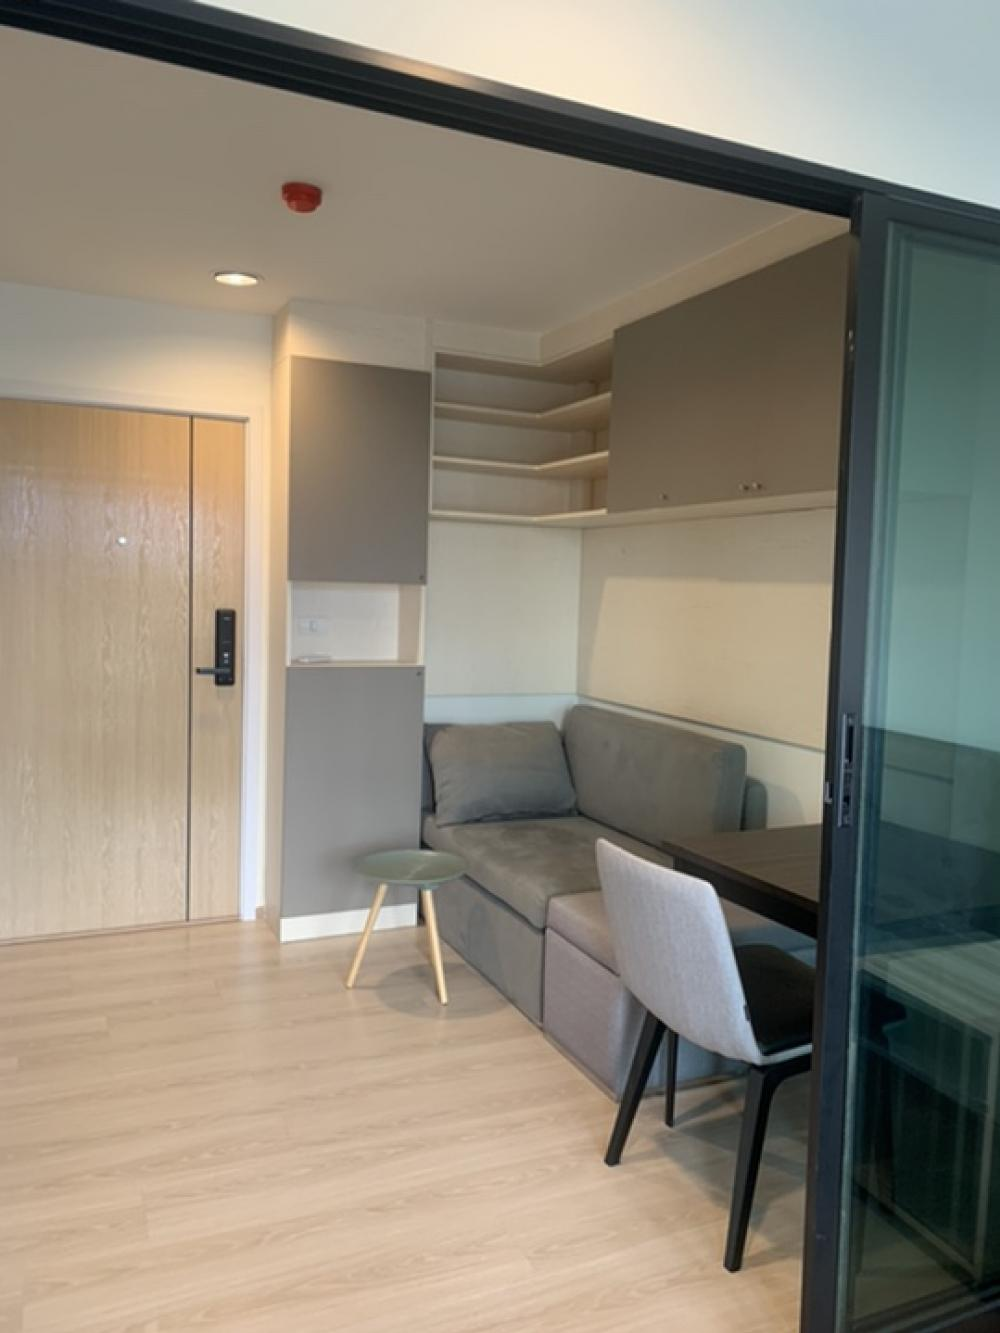 For SaleCondoRama9, RCA, Petchaburi : Condo for sale, rise Rama 9, new condo, fully furnished, ready to move in.